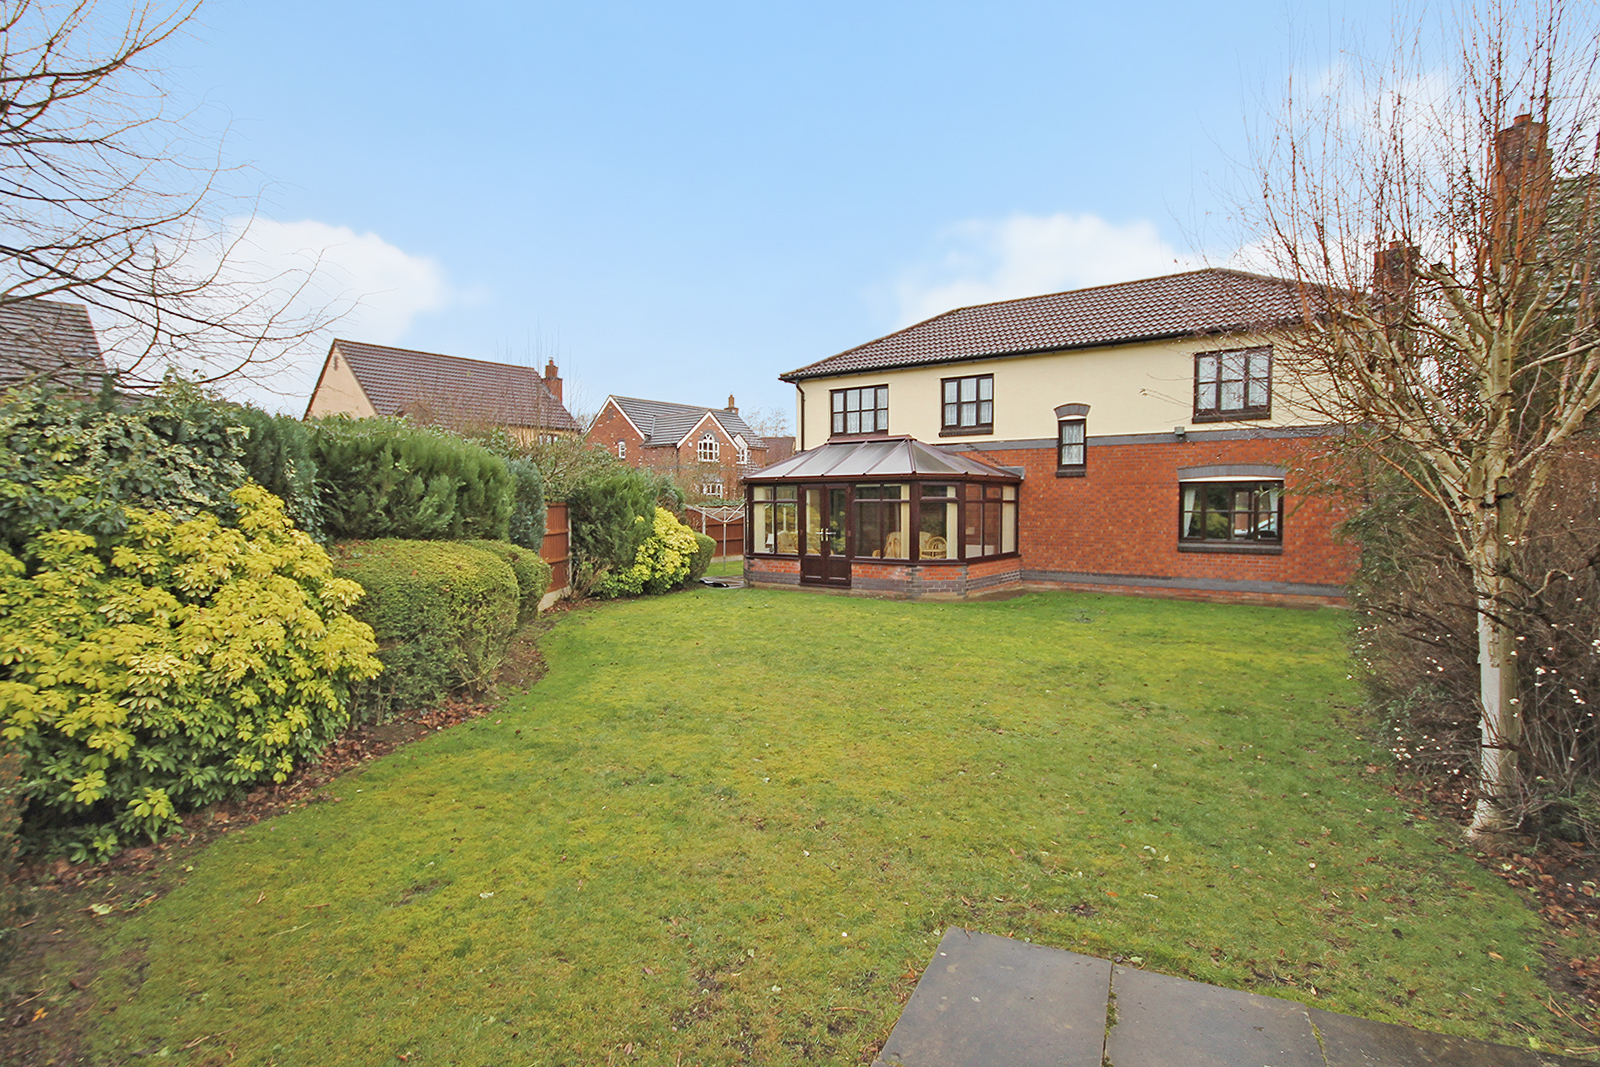 Secluded location for £550,000 five-bedroom family home